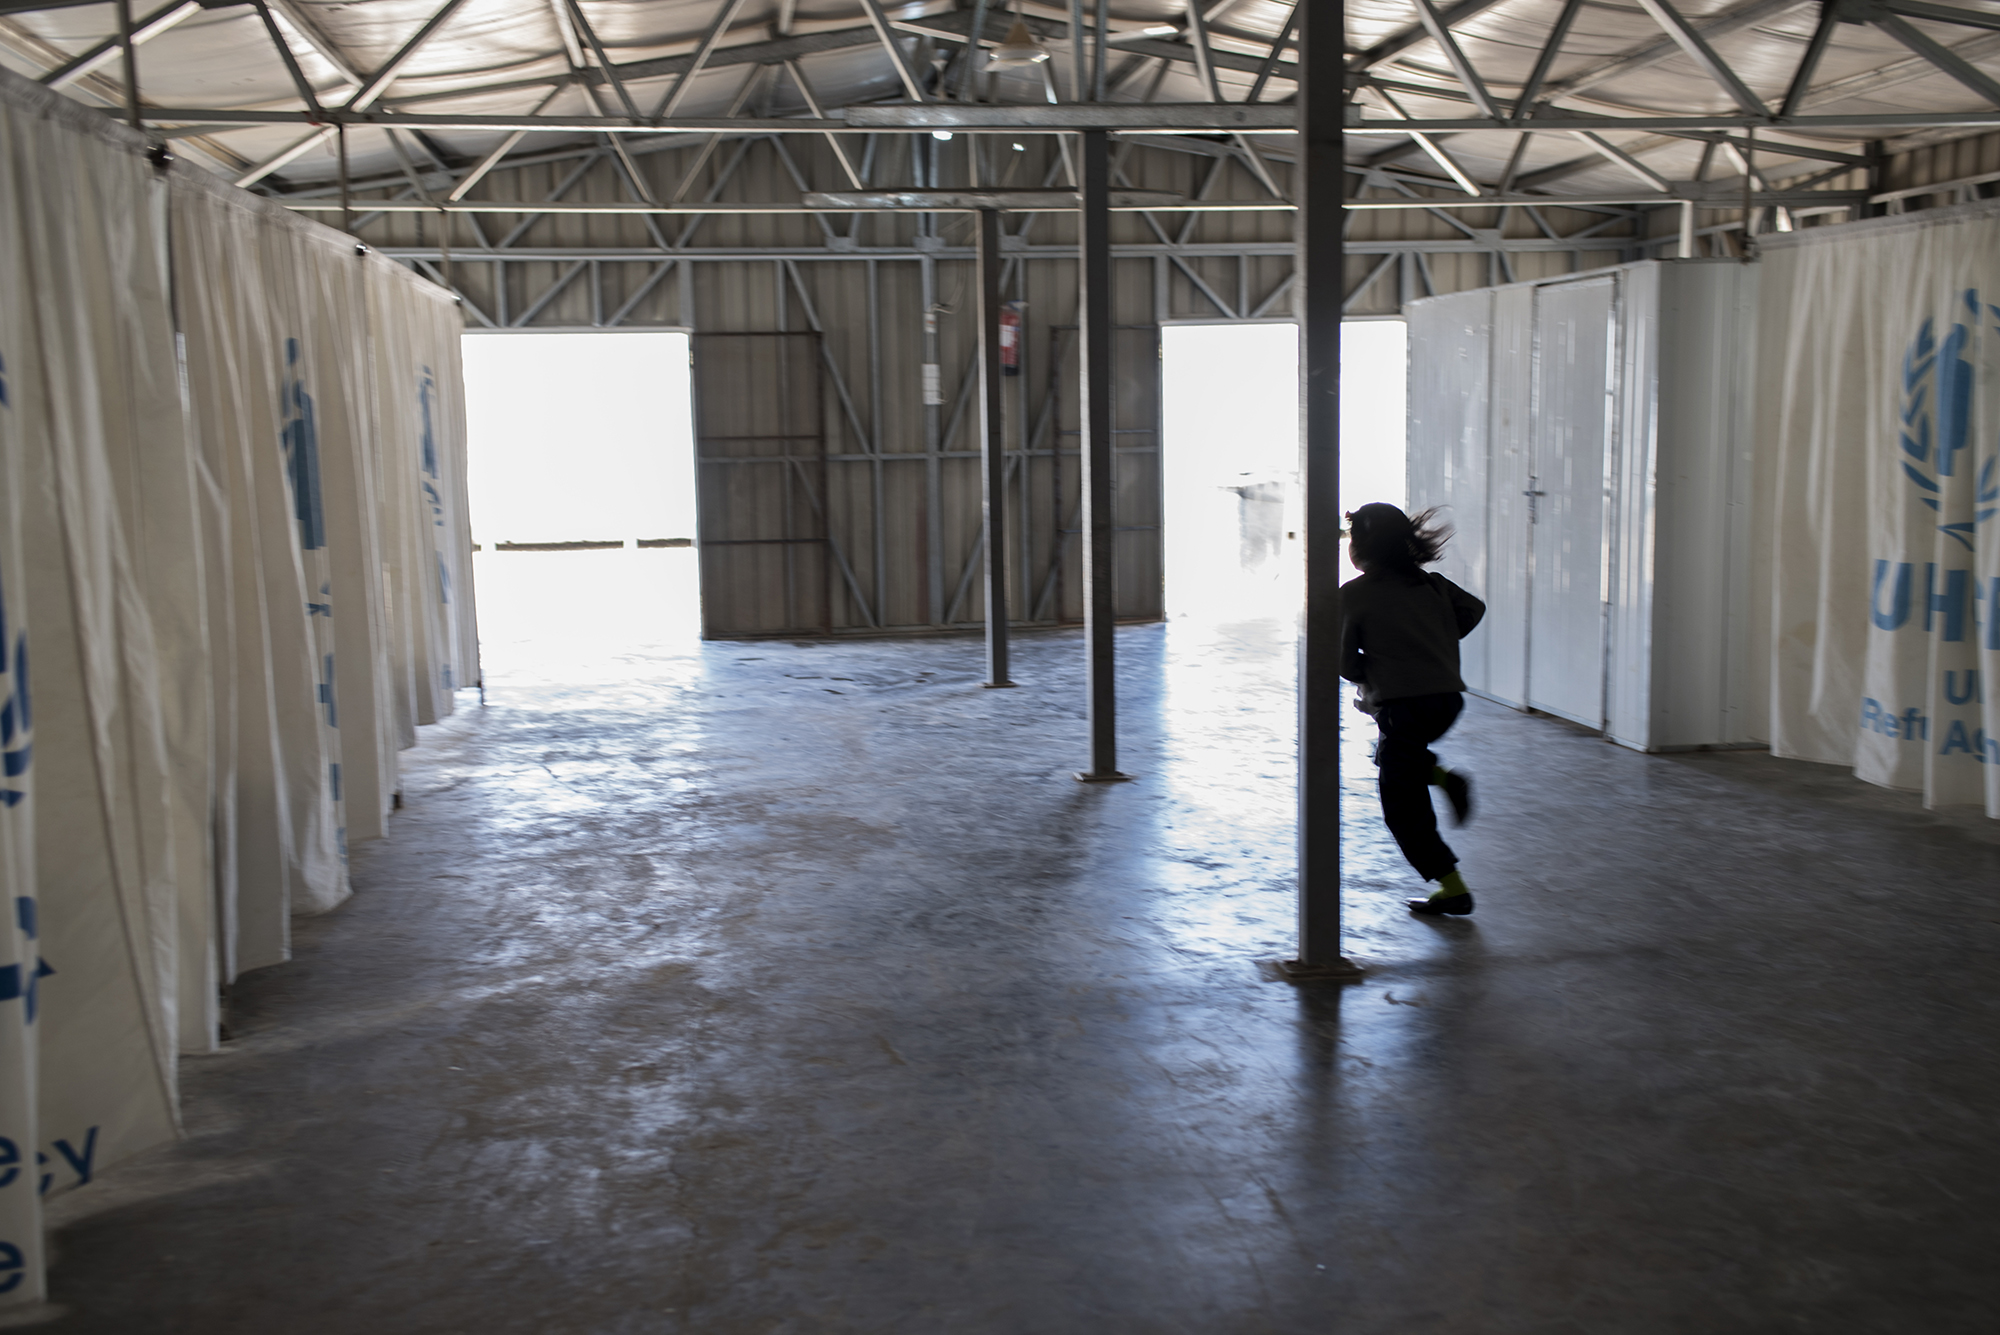 A Syrian child runs through a temporary shelter inside Jordan's Zaatari refugee camp, where vulnerable families wait for assistance upon arriving in the camp. February 2016.